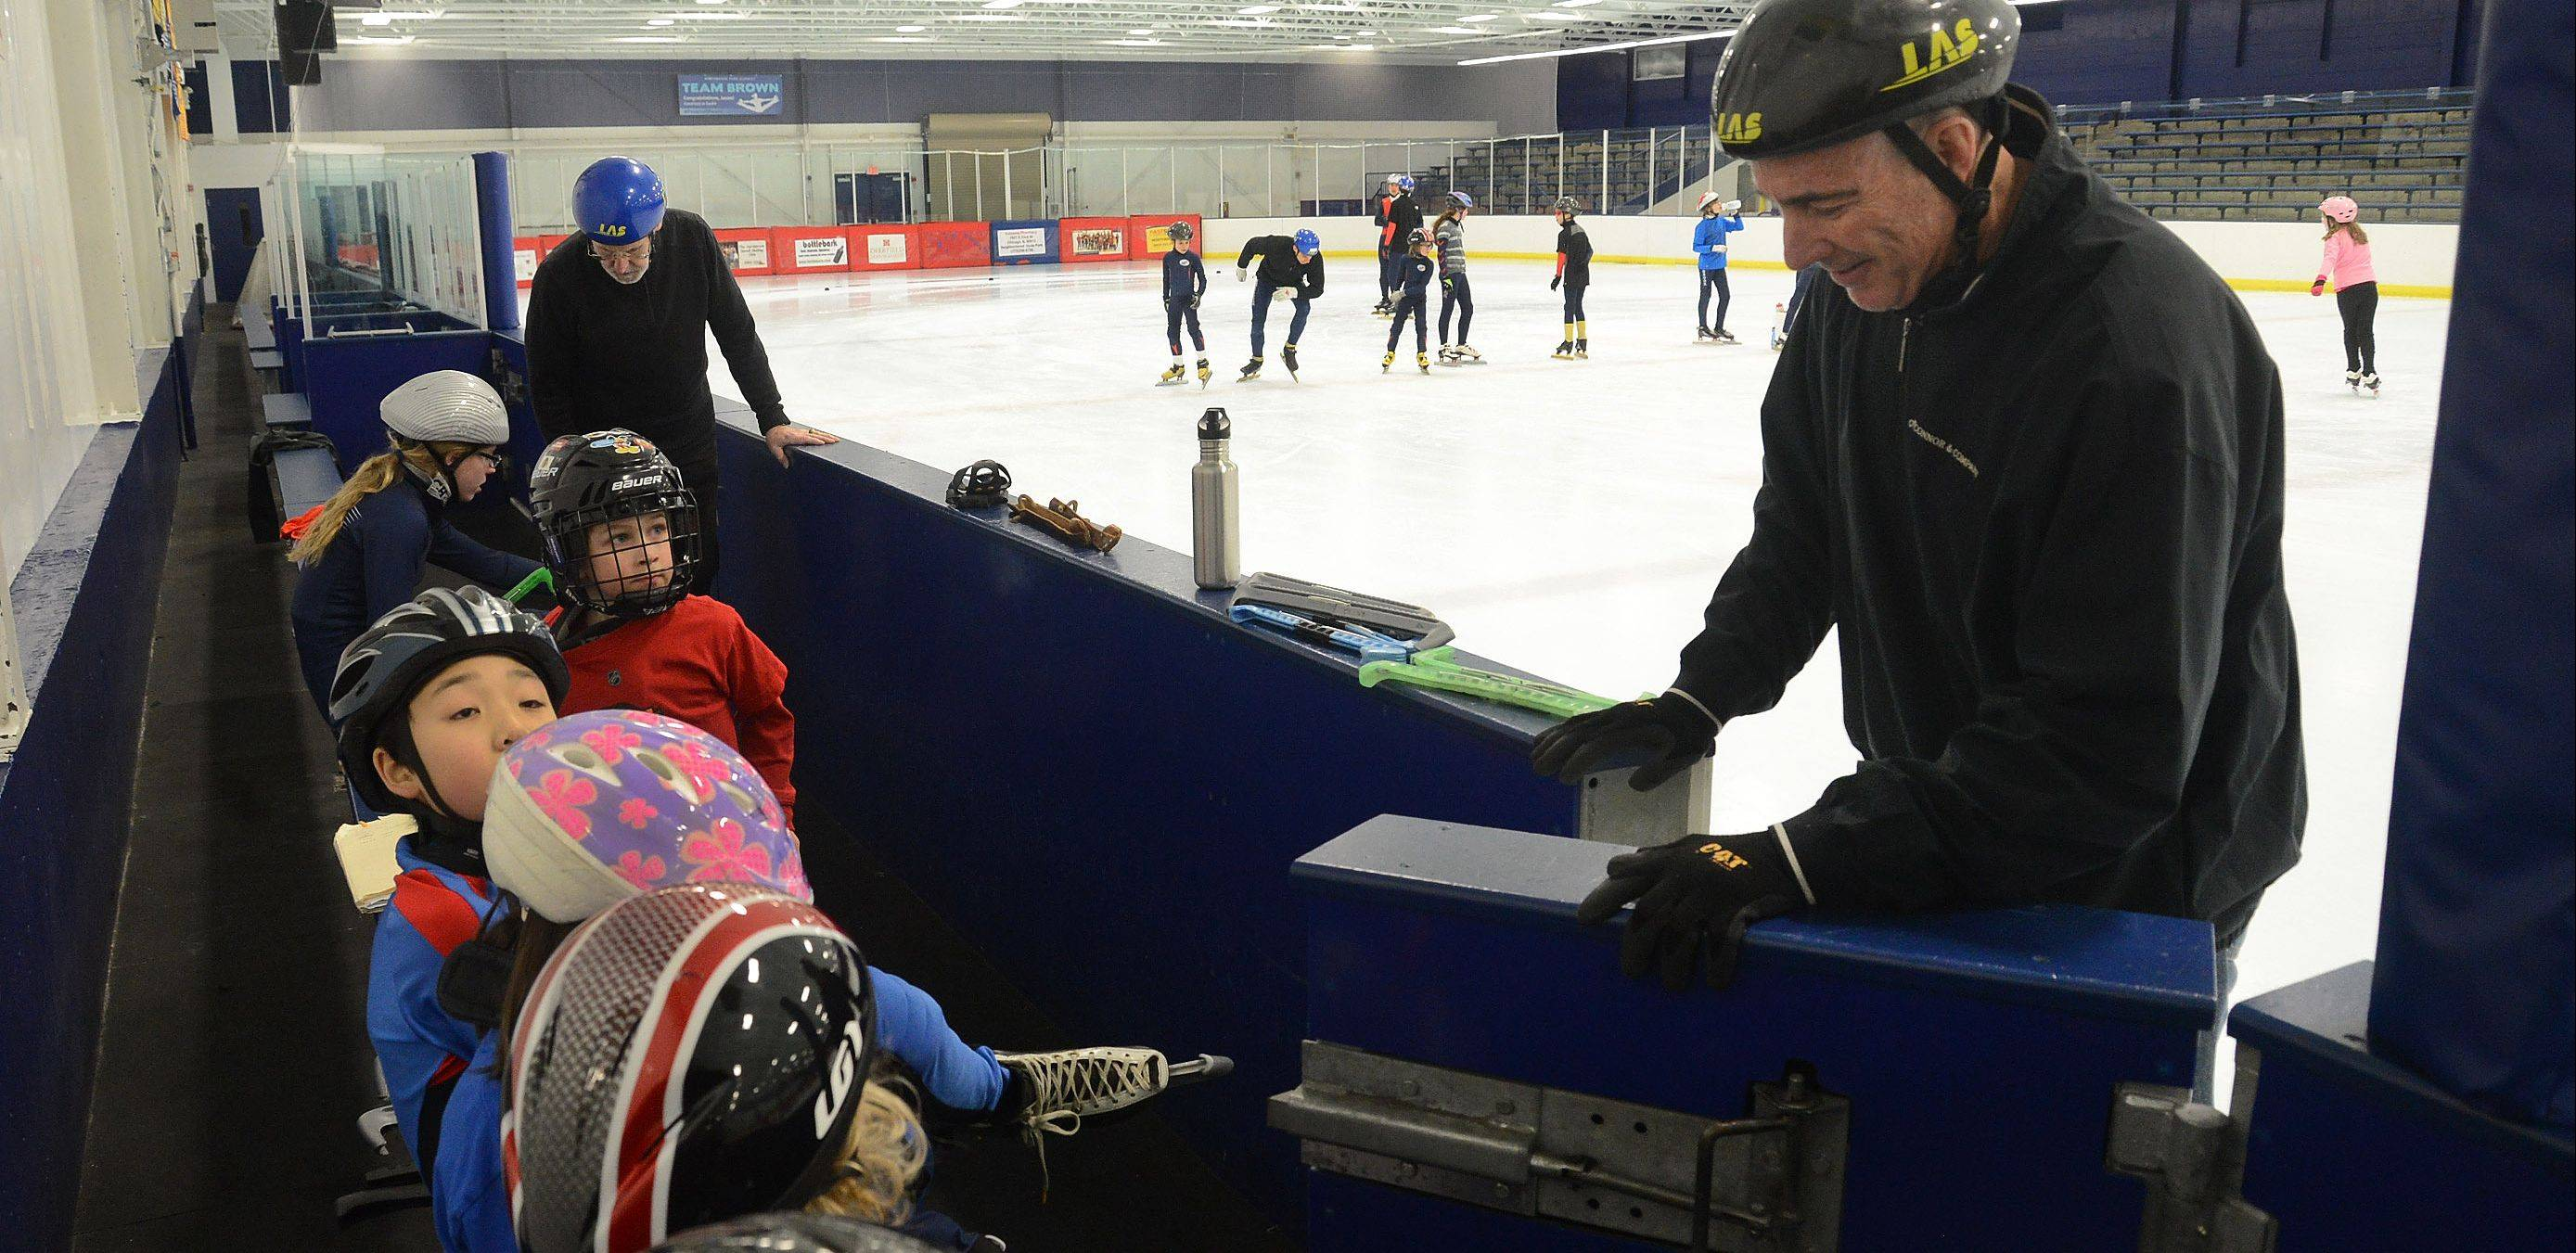 Coach David Mann, right, and two-time Olympic speed skater Chuck Burke, far left, work with the skaters during a practice with the Northbrook Speed Skating Club.